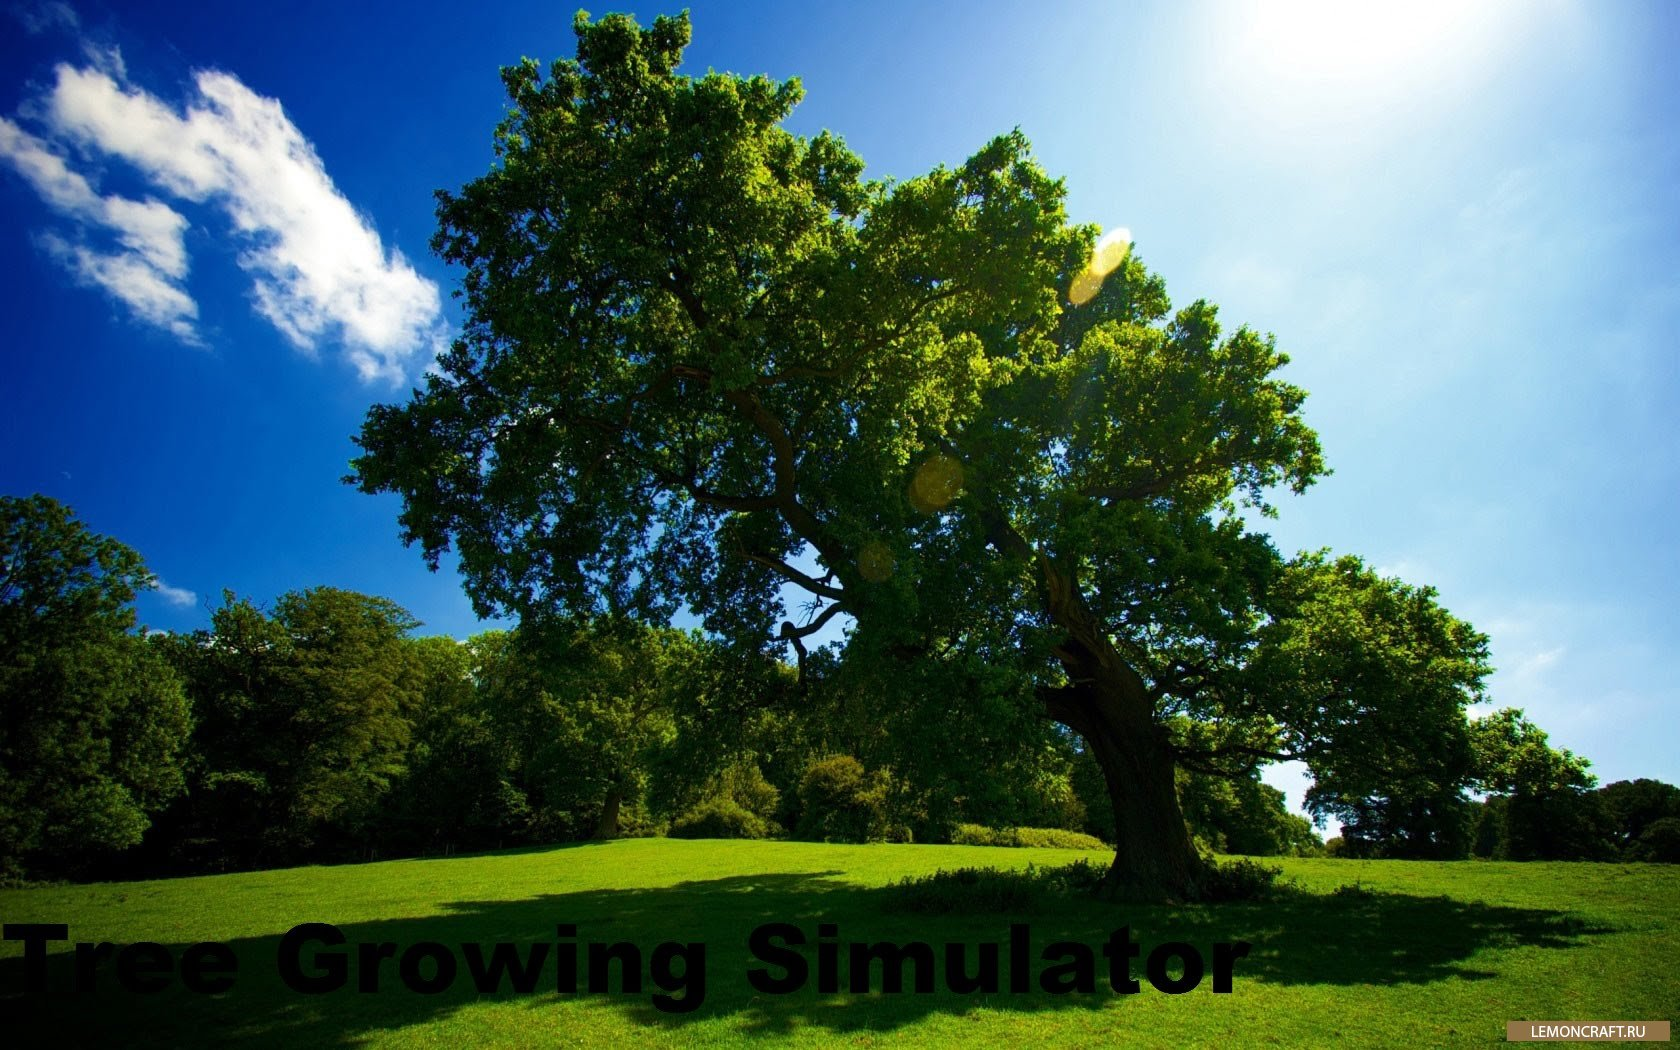 Мод на быстрорастущие деревья Tree Growing Simulator [1.12.2] [1.11.2] [1.10.2] [1.7.10]